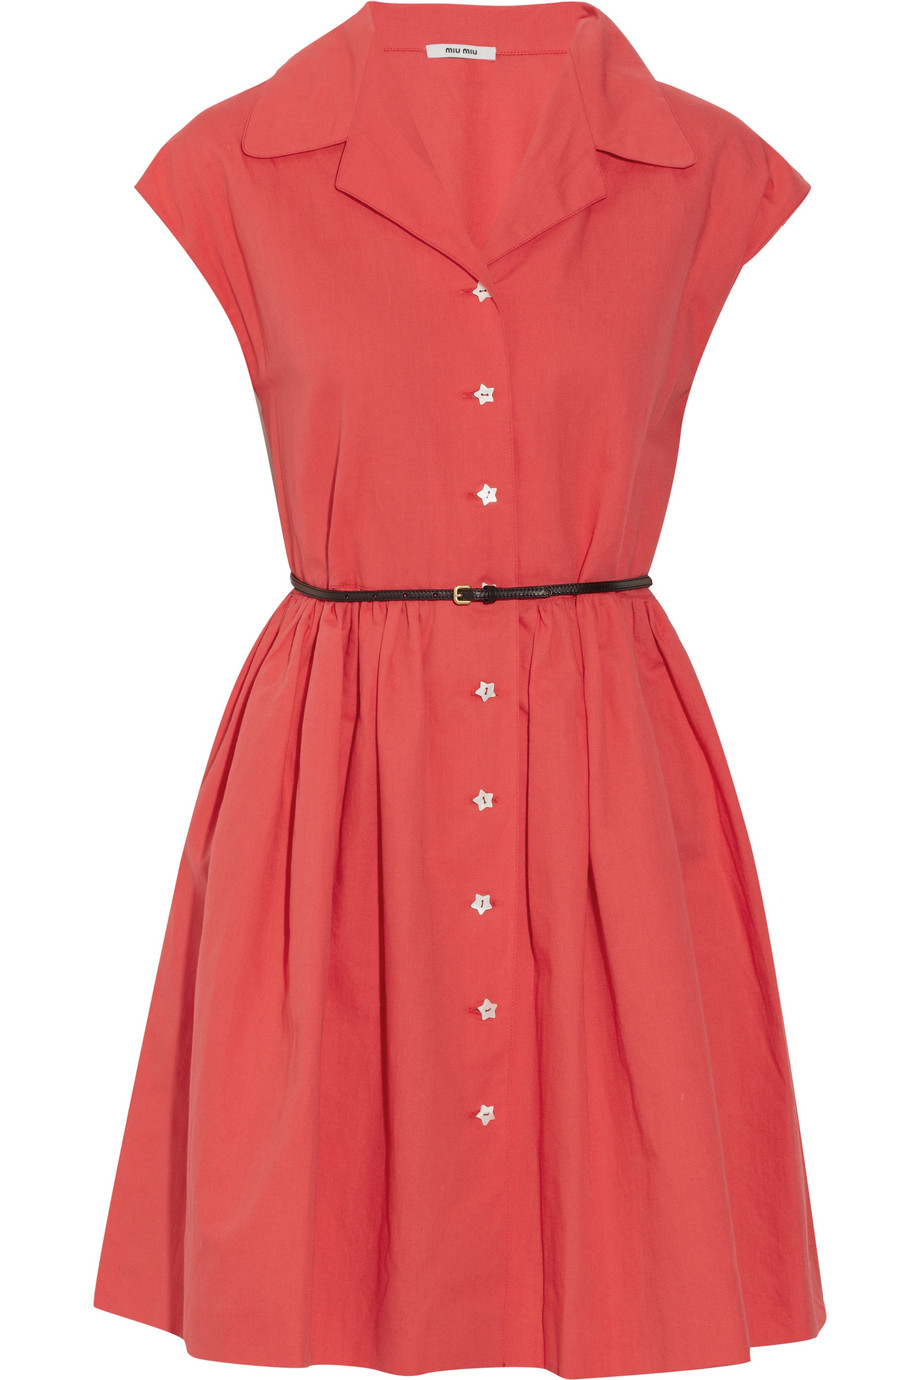 Miu miu Belted Cotton And Linen-Blend Shirt Dress in Red | Lyst